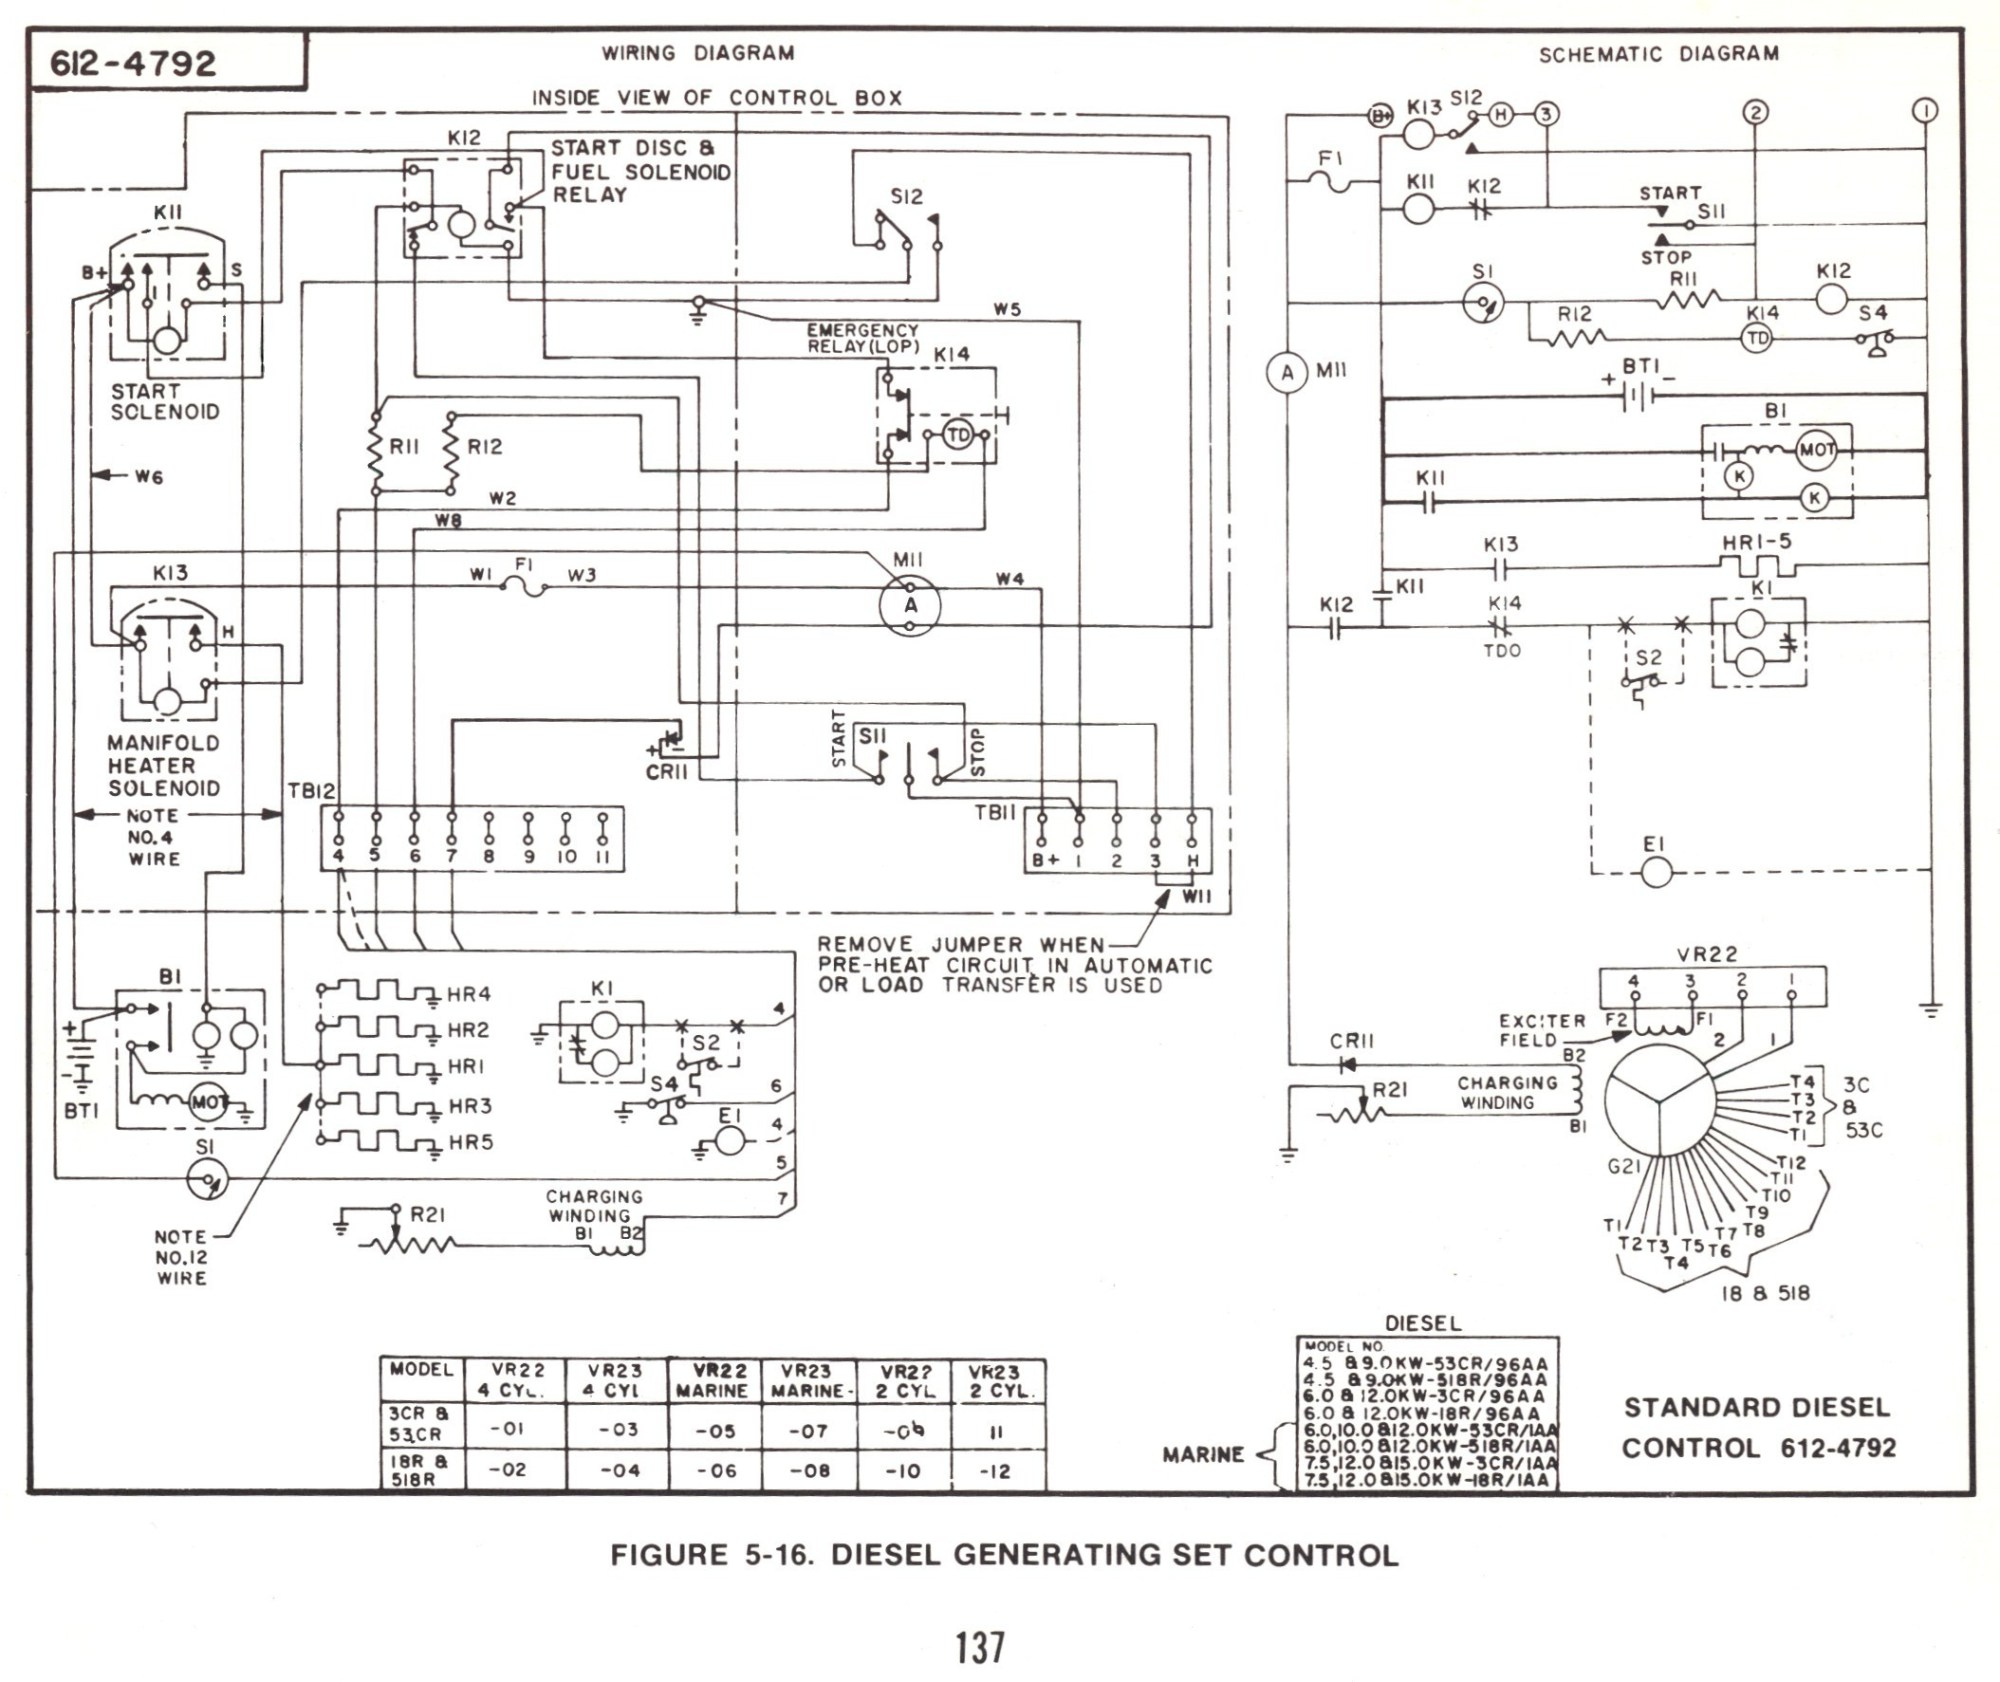 hight resolution of panel to generator wiring diagram wiring diagram tutorialall power 3500 generator wiring diagram wiring diagrams export10kw